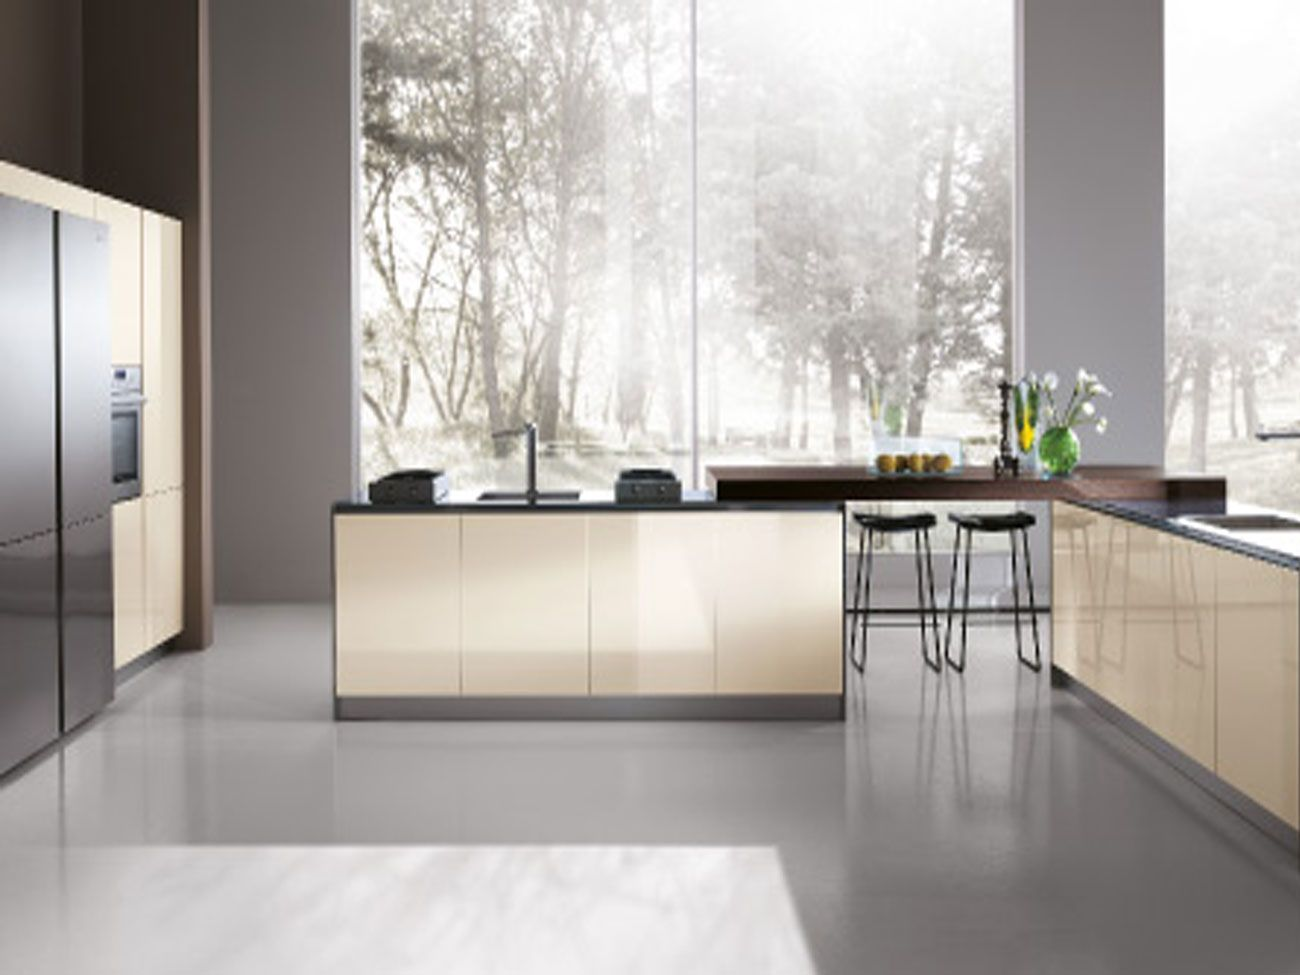 Los Angeles Kitchen Cabinets Miton High Quality Italian Kitchen By Mef Italian Kitchen Design